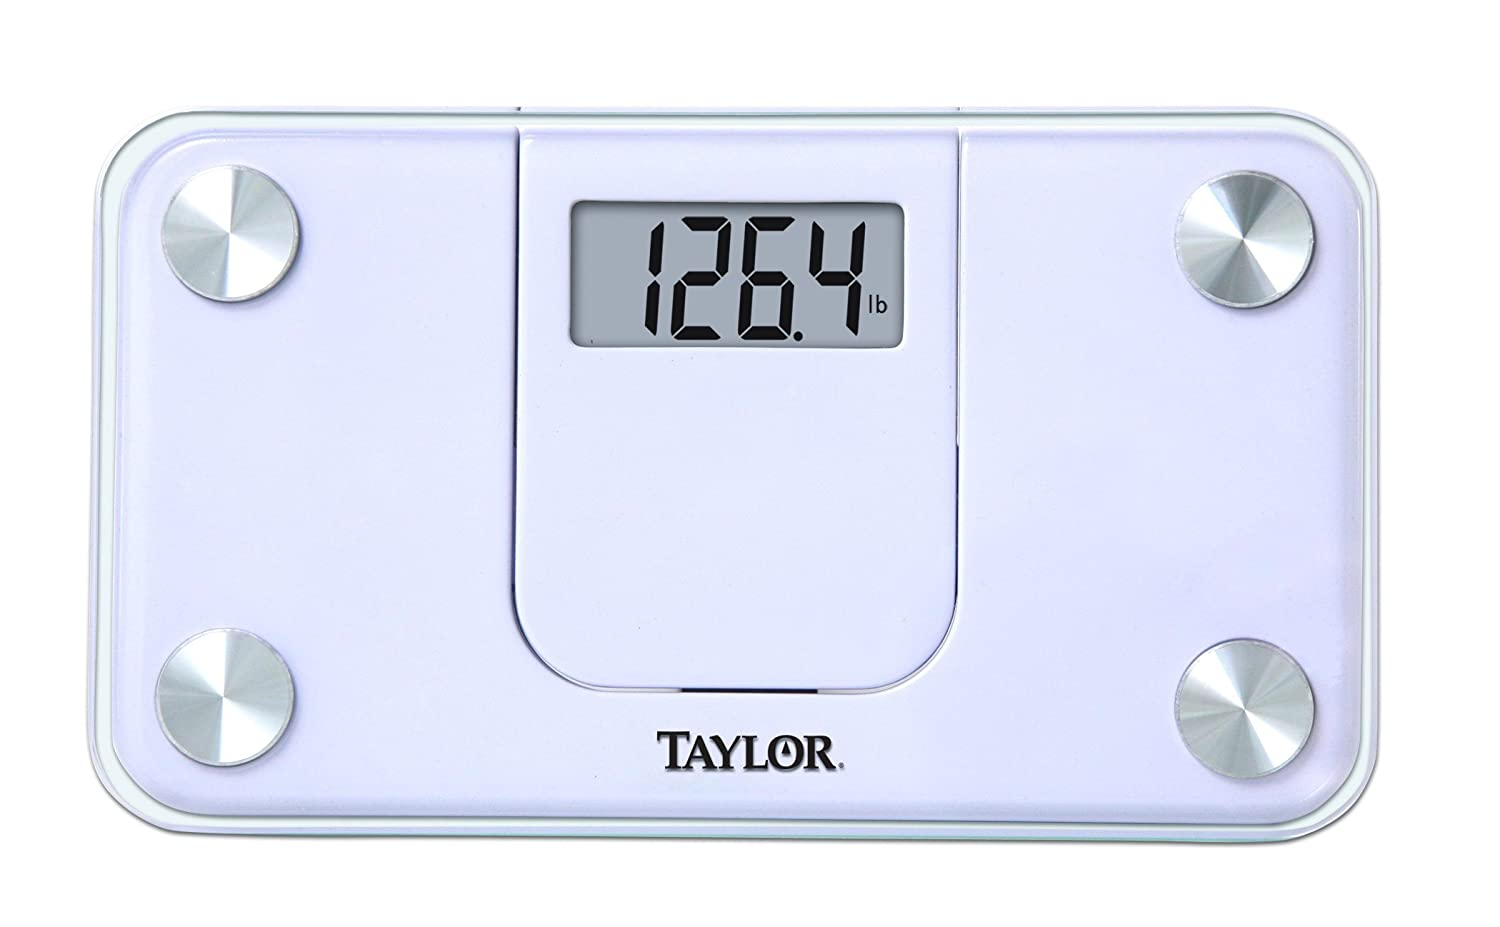 Taylor 7086 Mini Digital Bathroom Scale Best Digital Scales